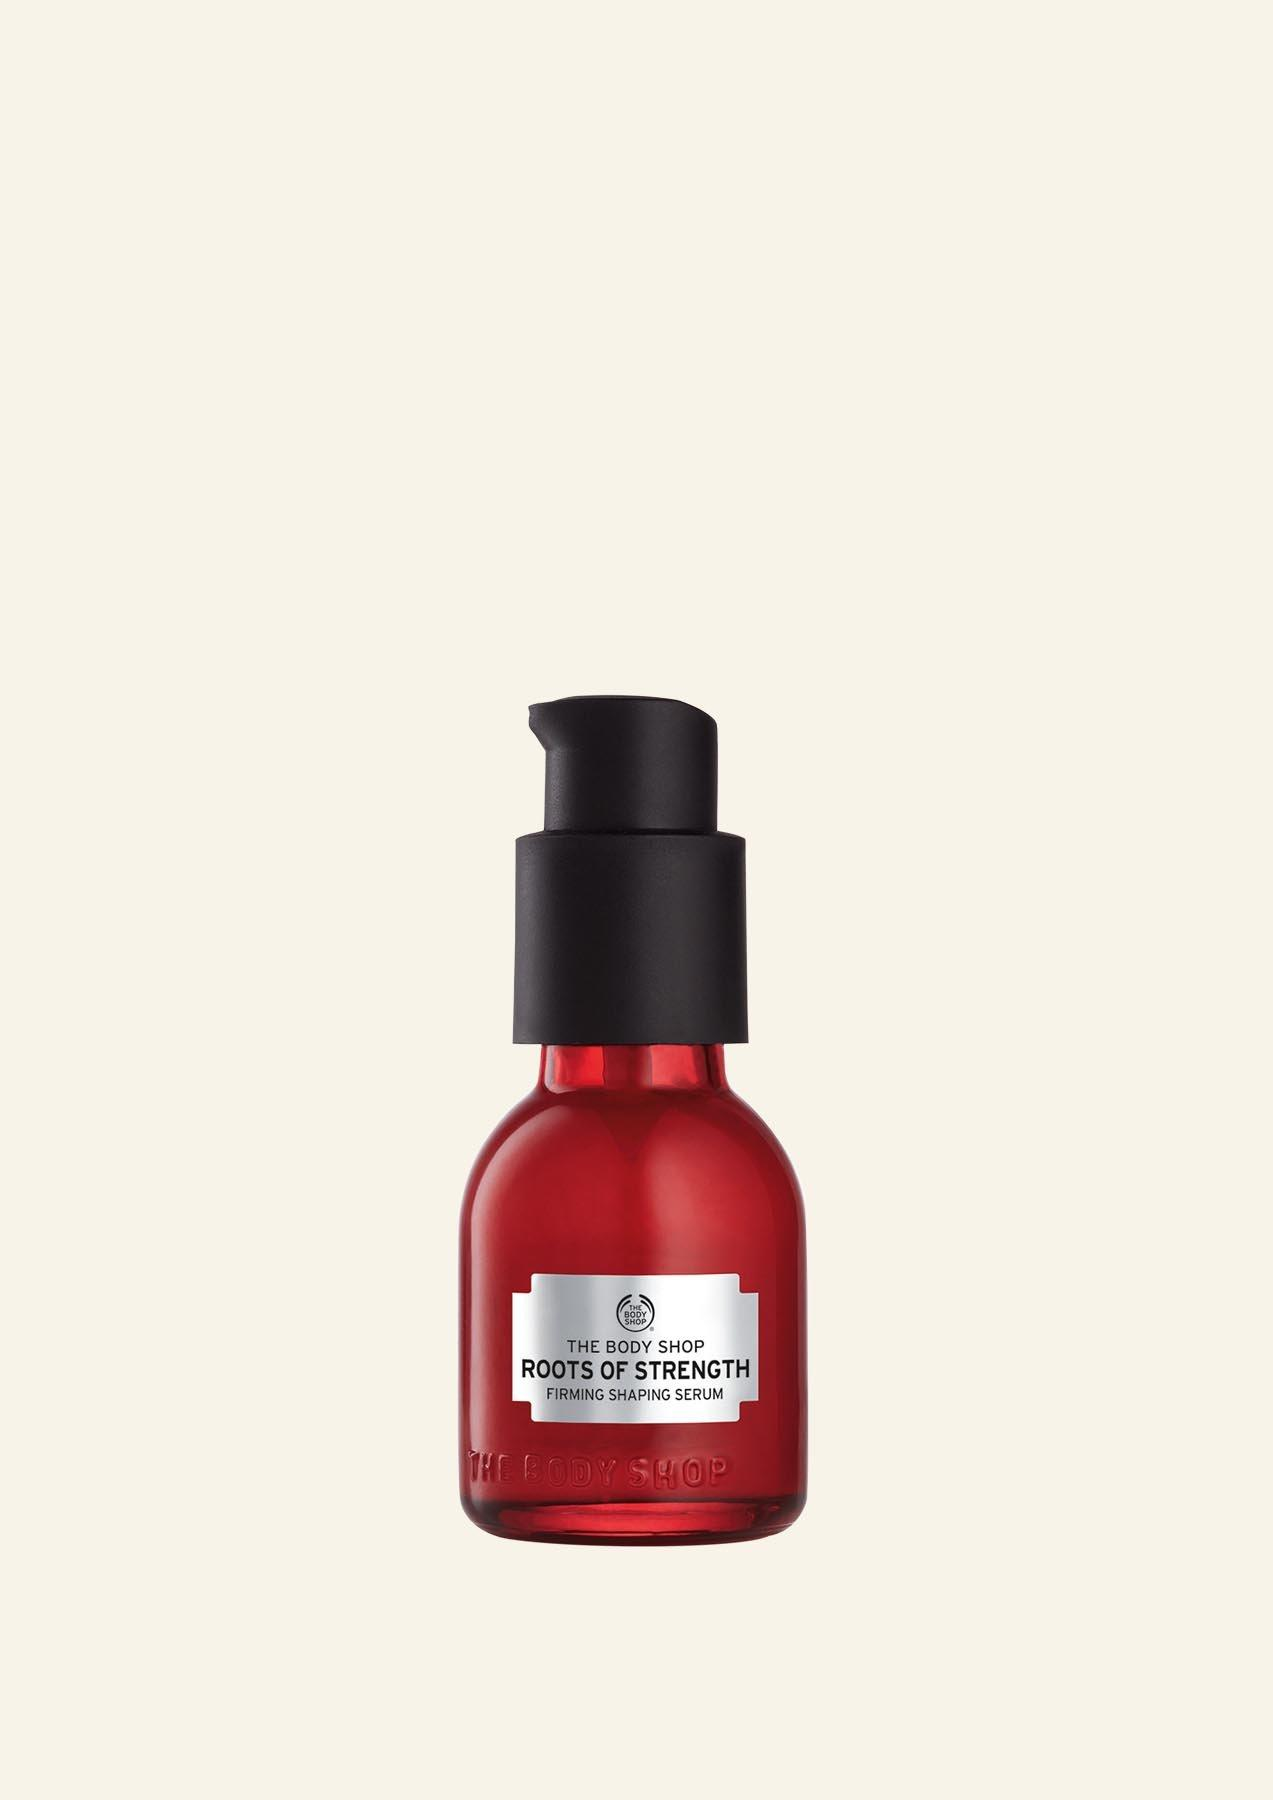 Roots of Strength™ Firming Shaping Serum